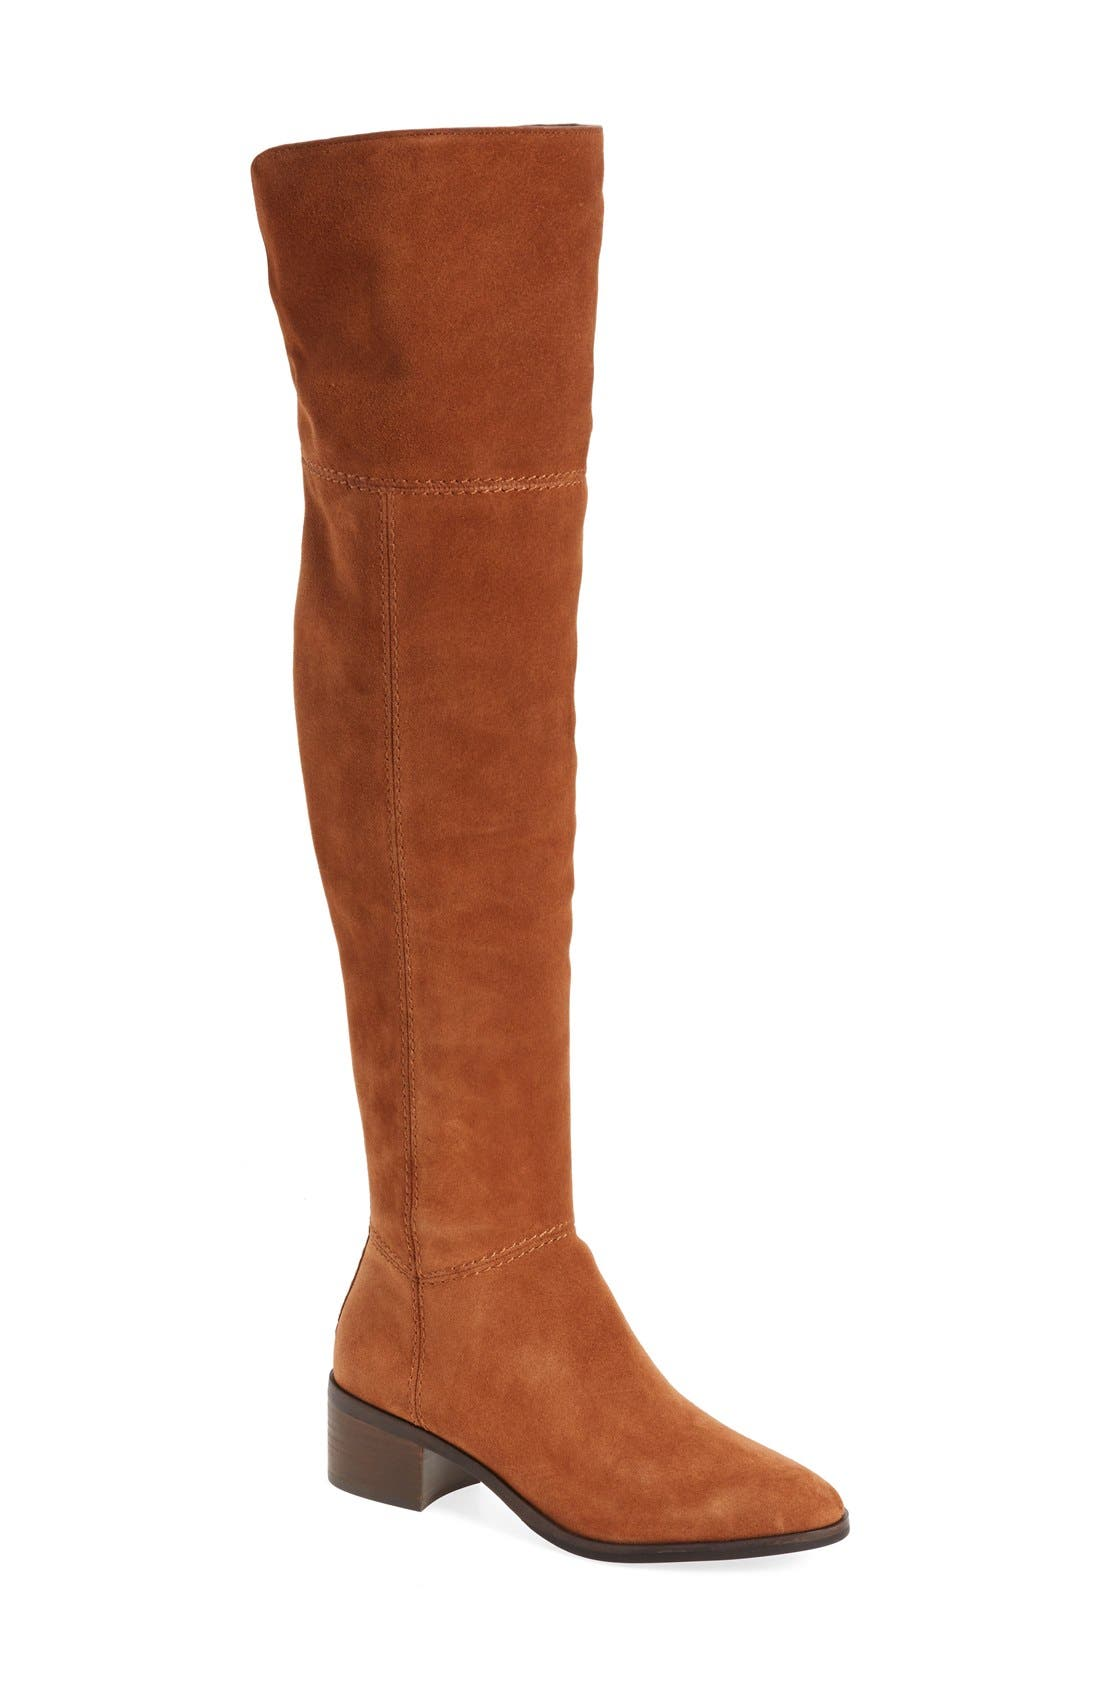 Main Image - COACH 'Lucia' Cuffable Over the Knee Boot (Women)